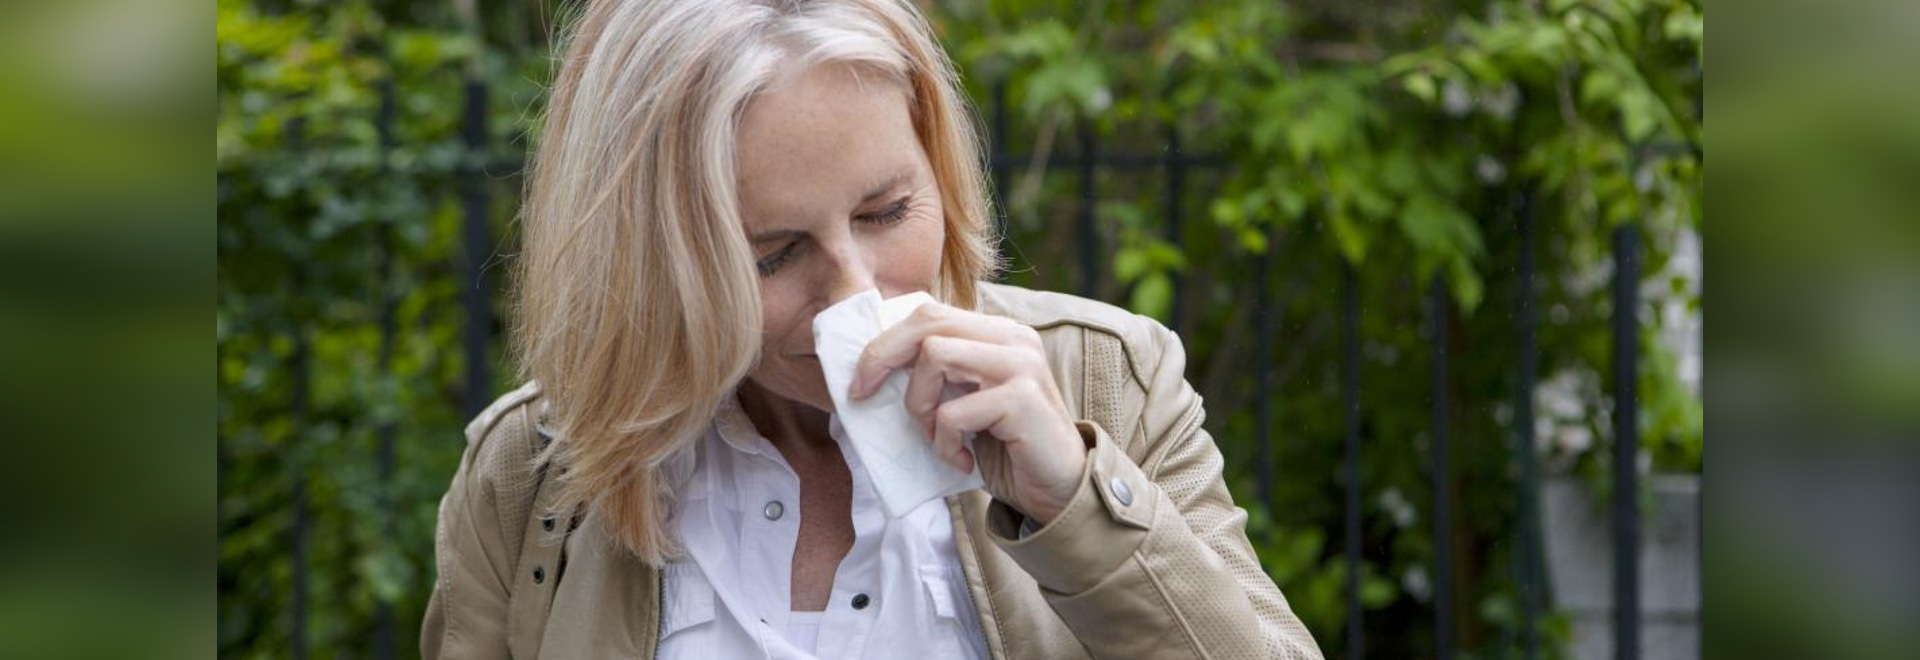 New research identifies an association between generalized anxiety and the presence of seasonal allergies.